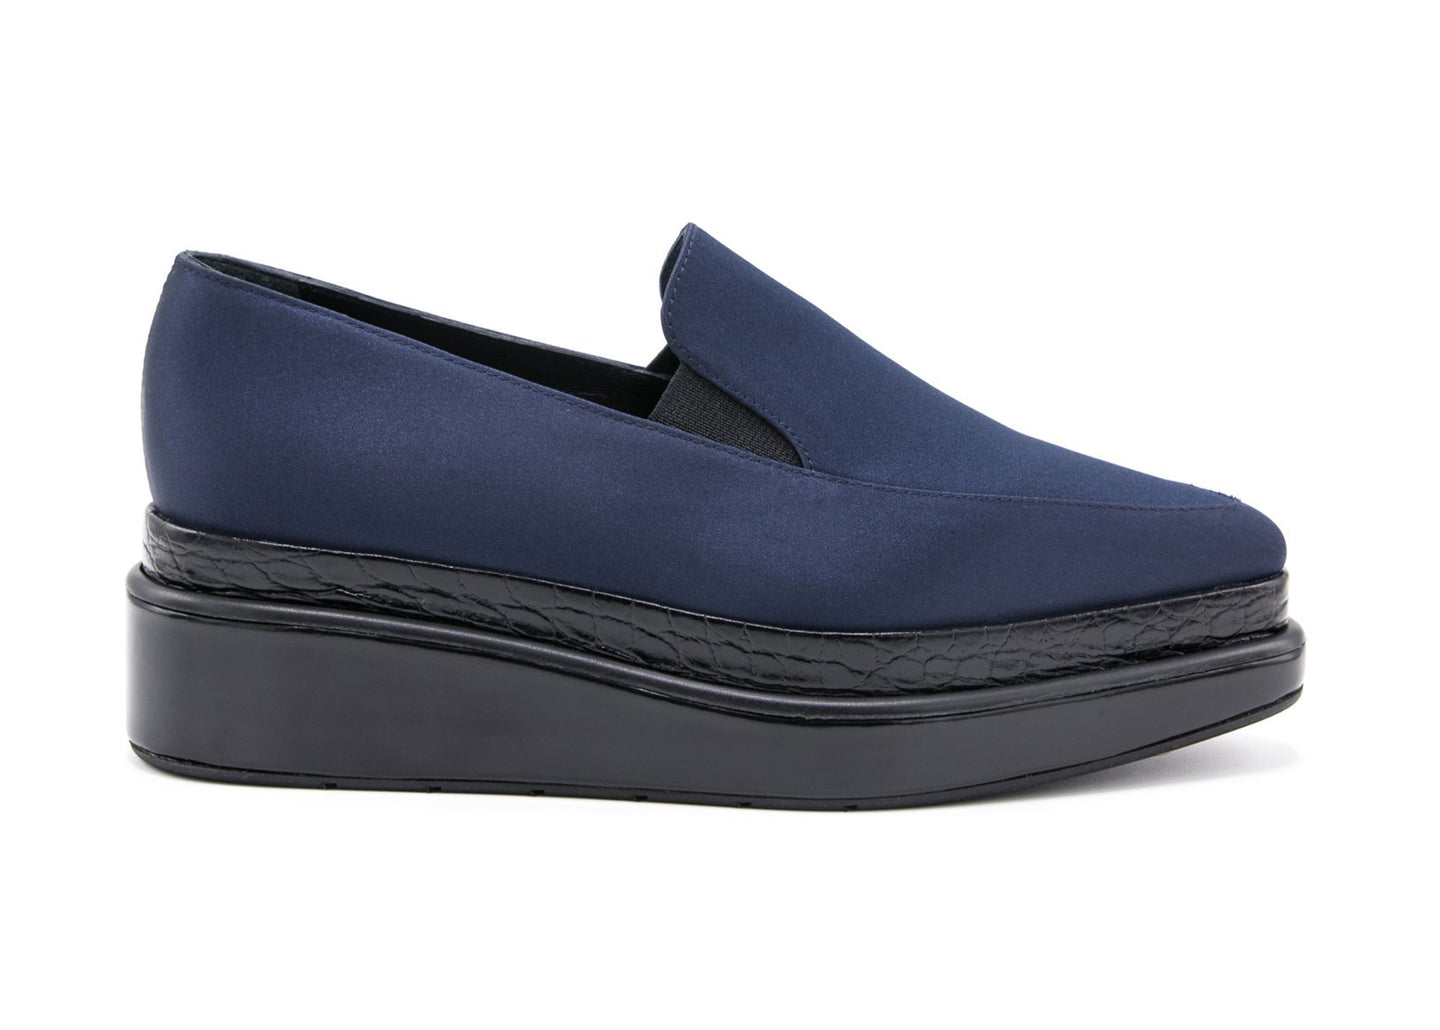 Navy Satin Loafer